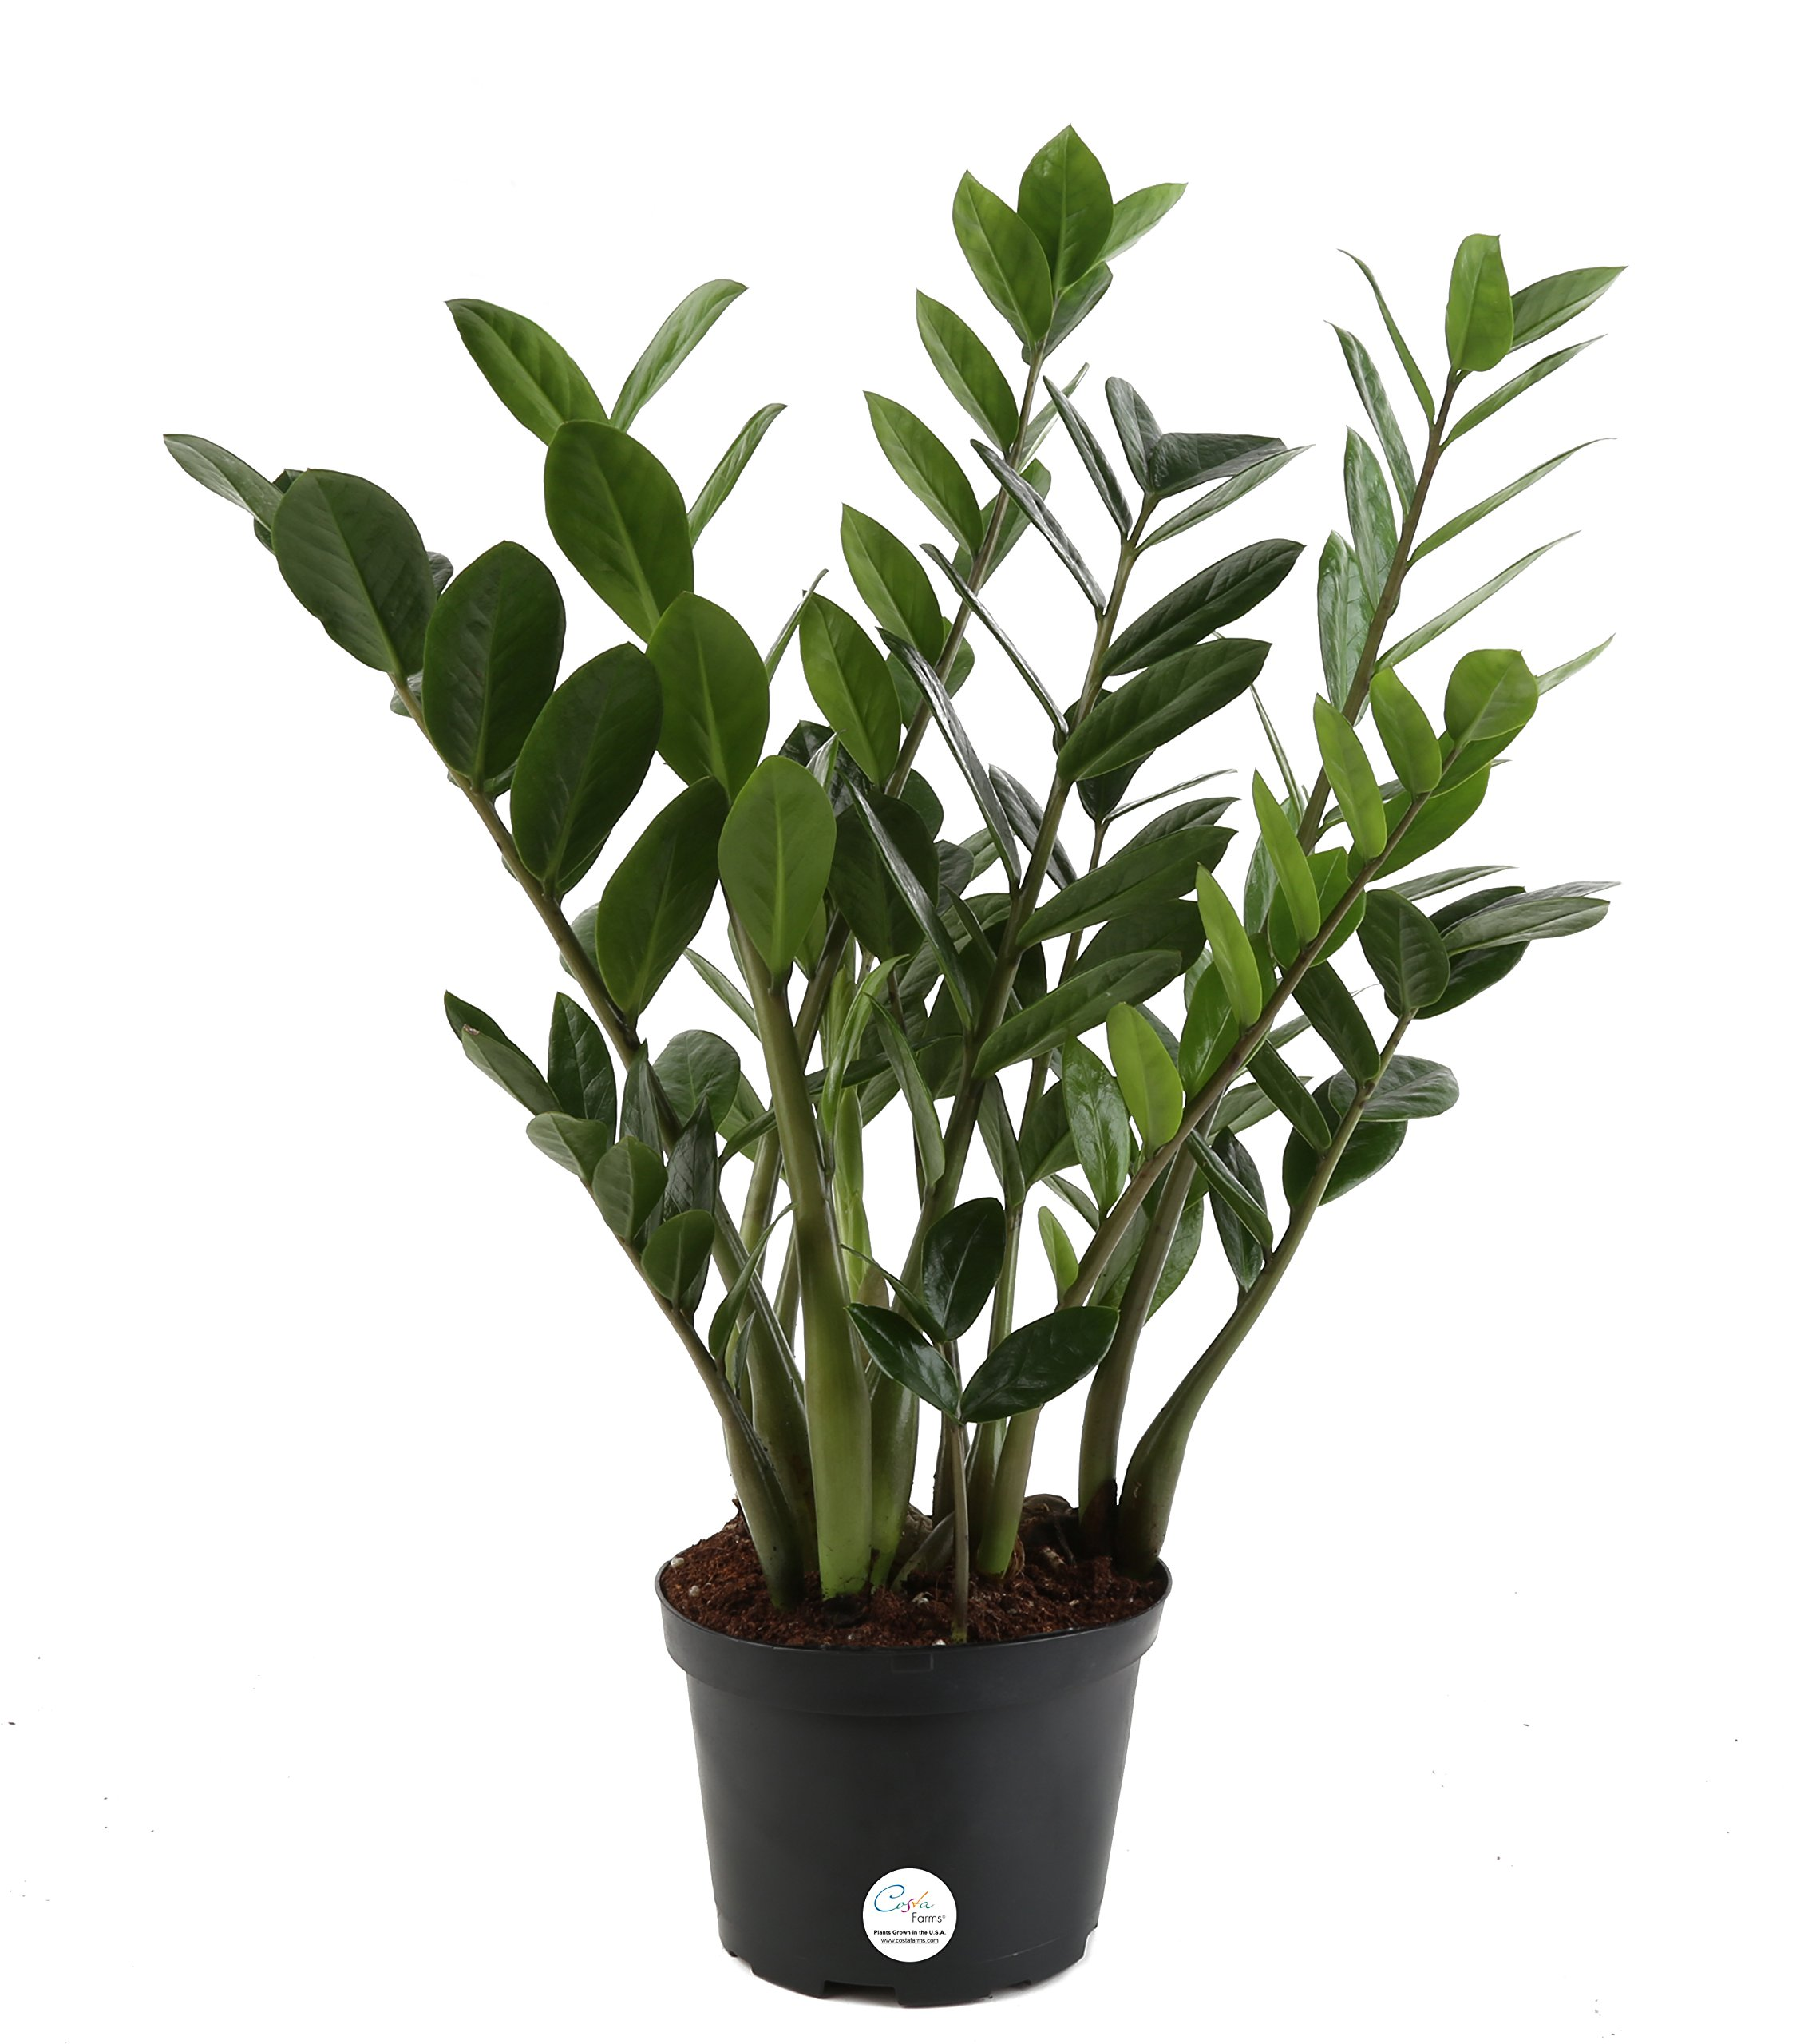 Costa Farms ZZ Live Indoor Tabletop Plant in 6-Inch Grower Pot